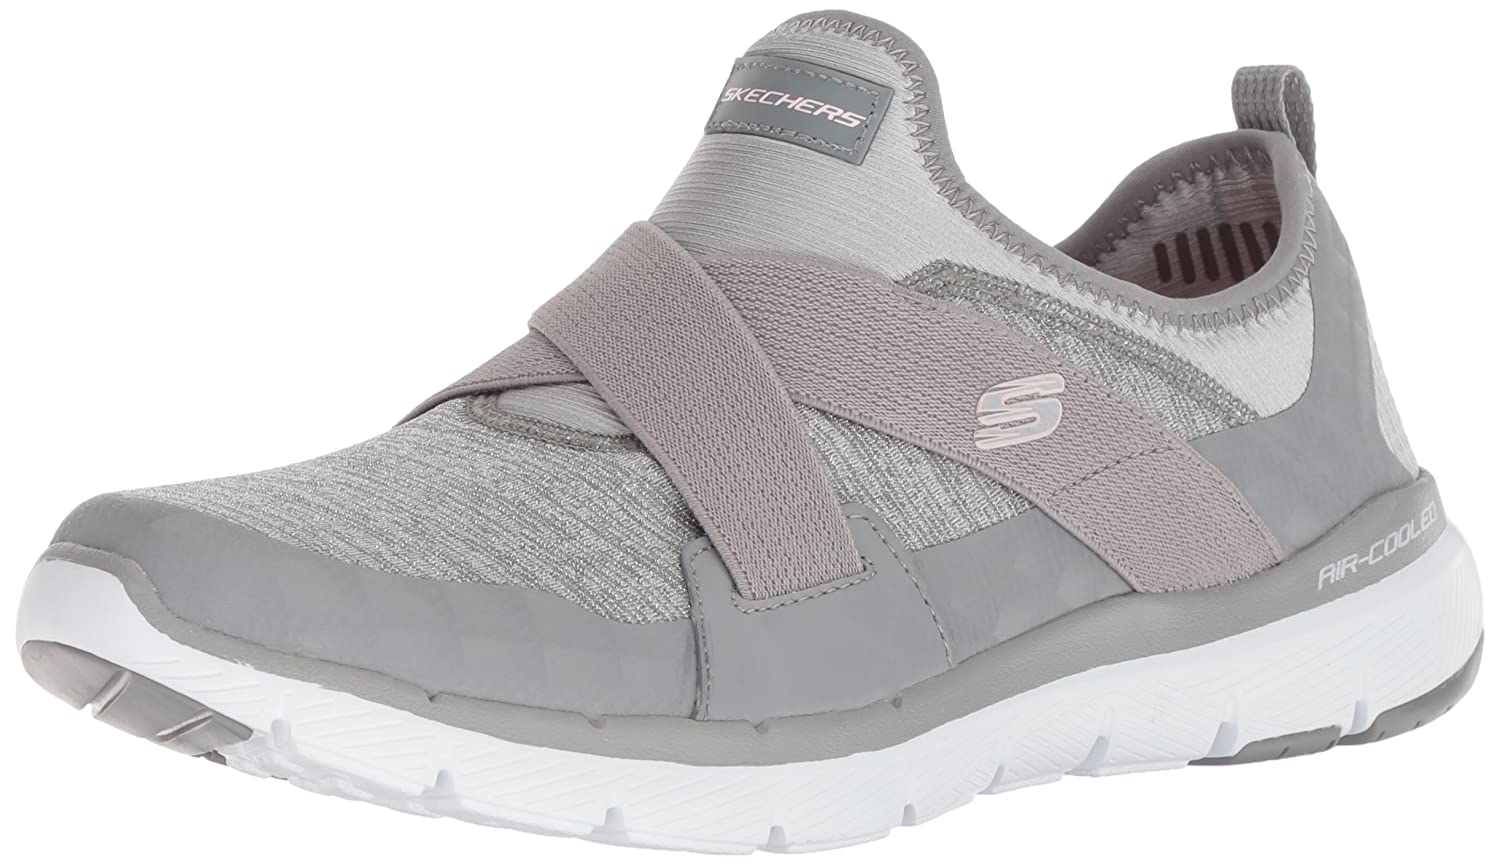 Skechers Women's Flex Appeal 3.0-Finest Hour Sneaker B07B16BPF3 11 M US|Grey